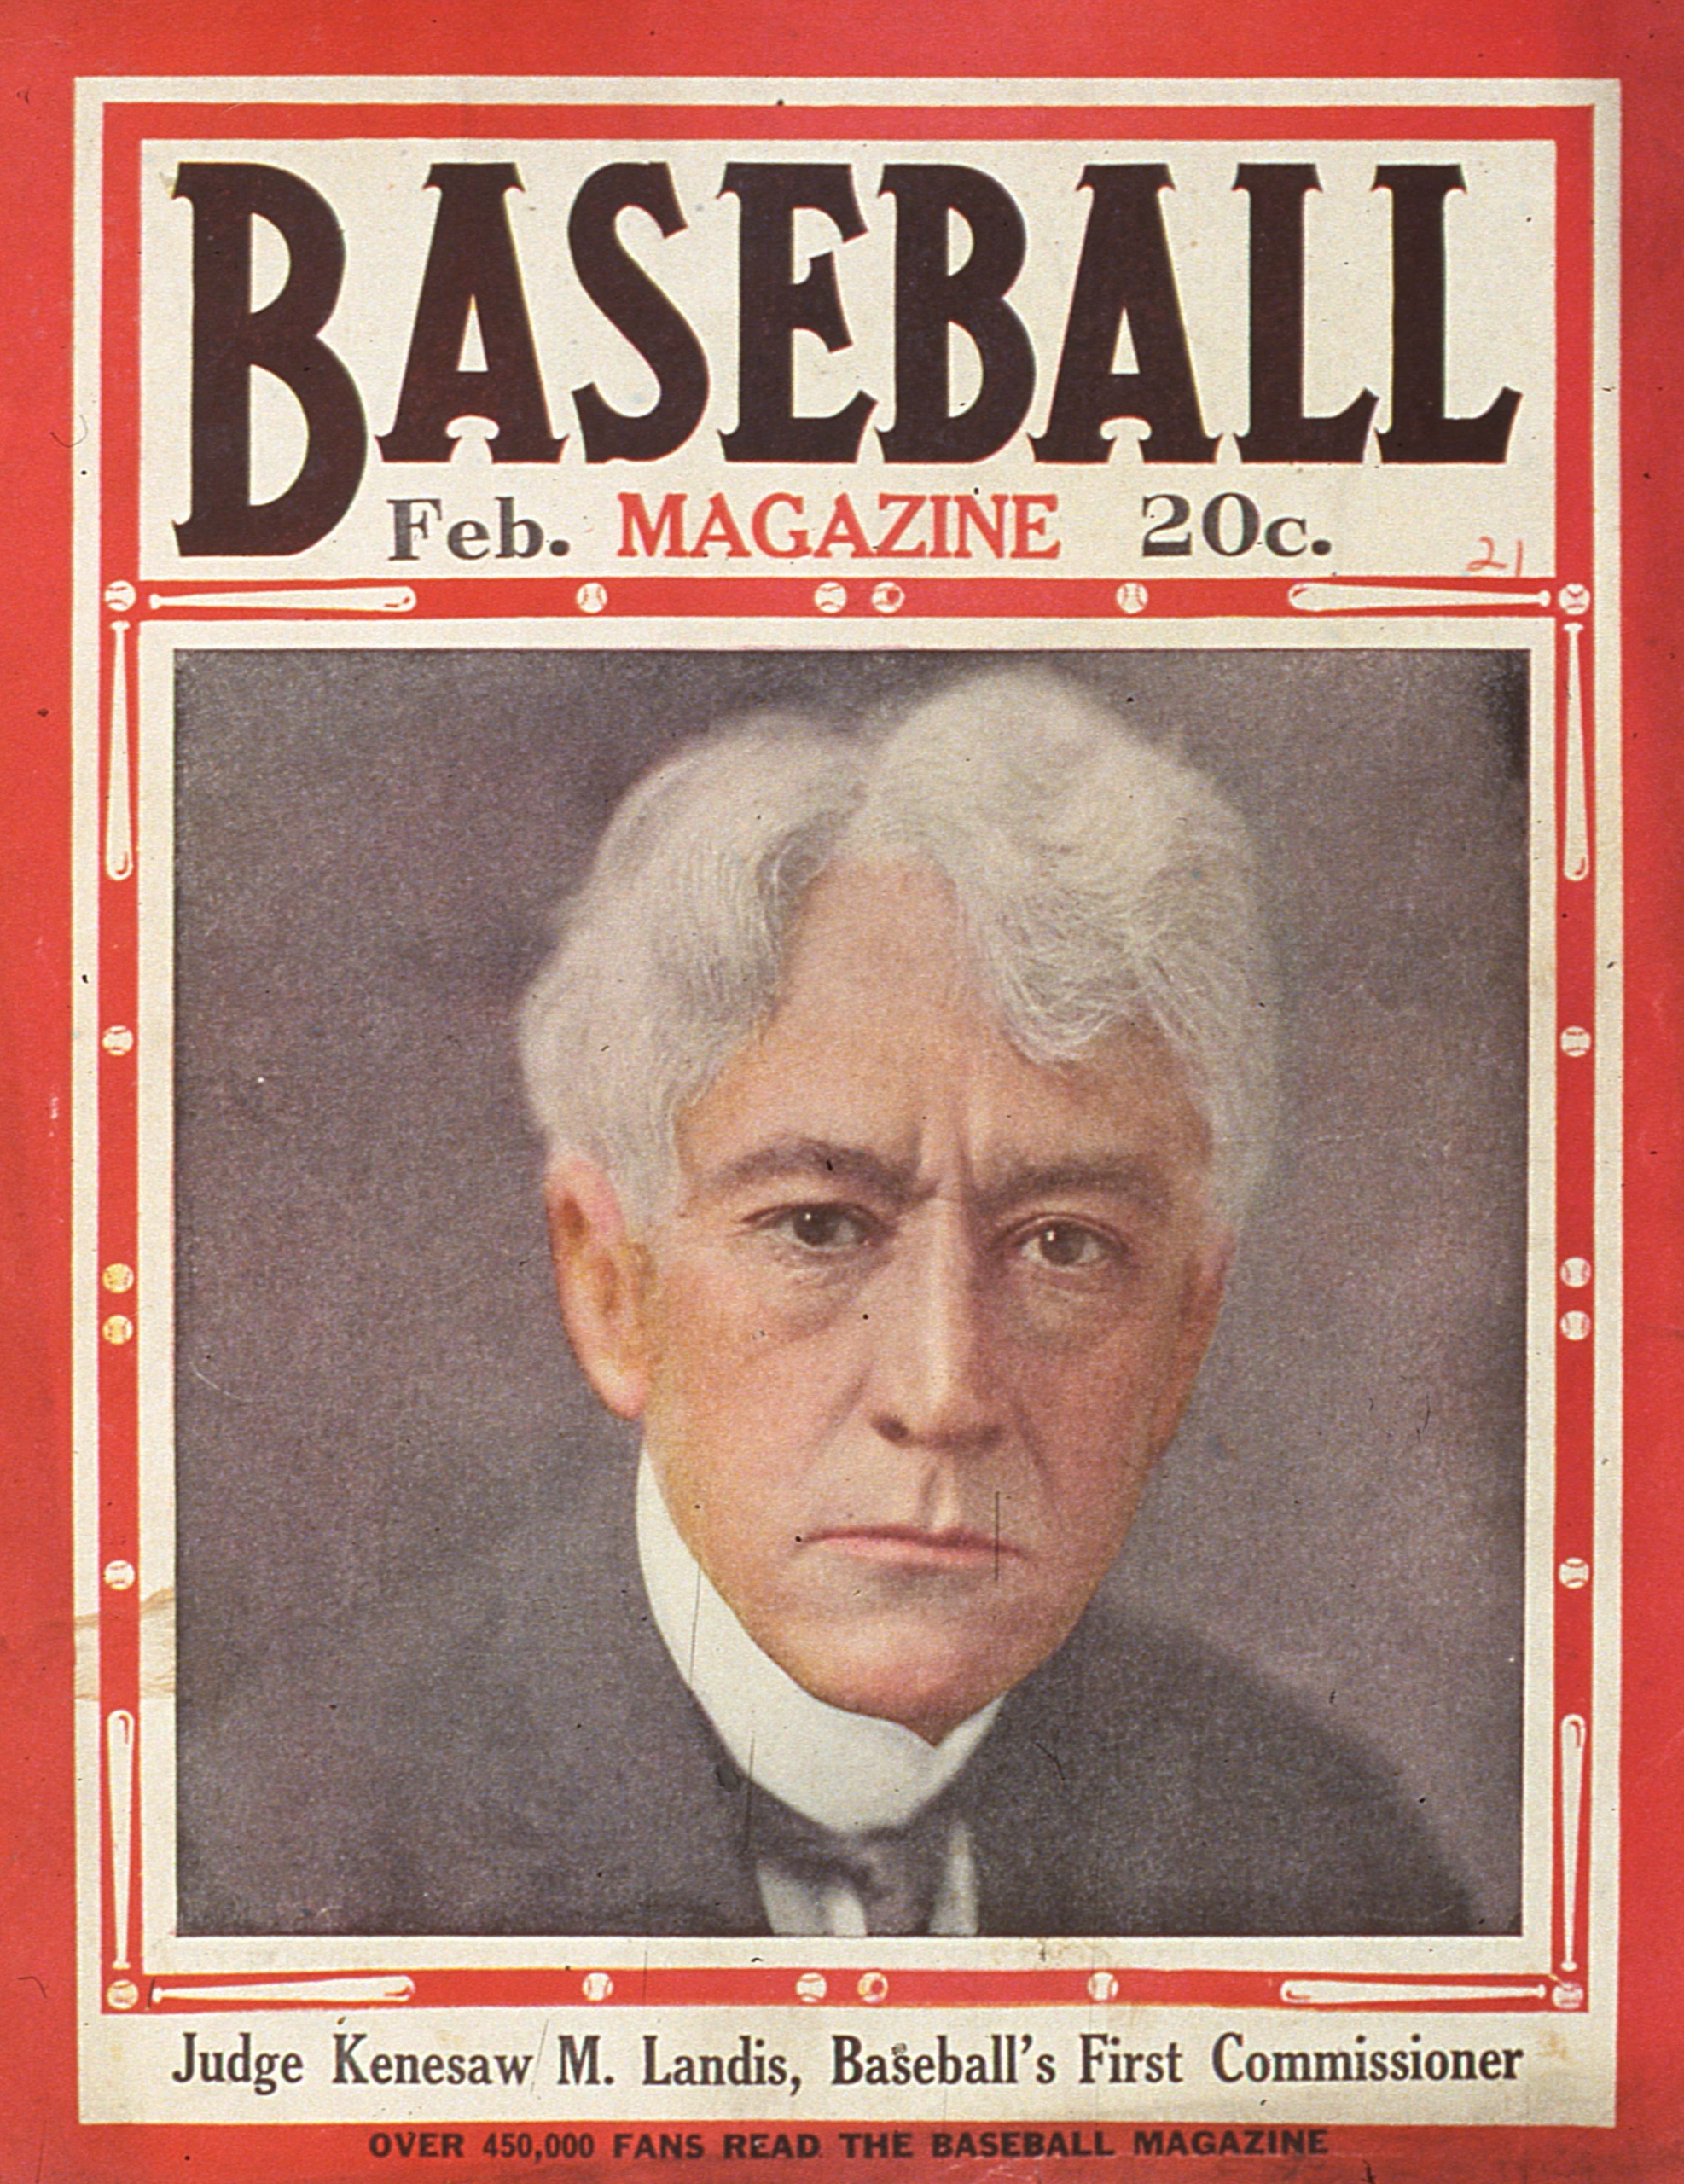 Baseball's first Commissioner Kennesaw Mountain Landis is pictured on the February 1921 cover of Baseball Magazine (SABR-RUCKER ARCHIVE)